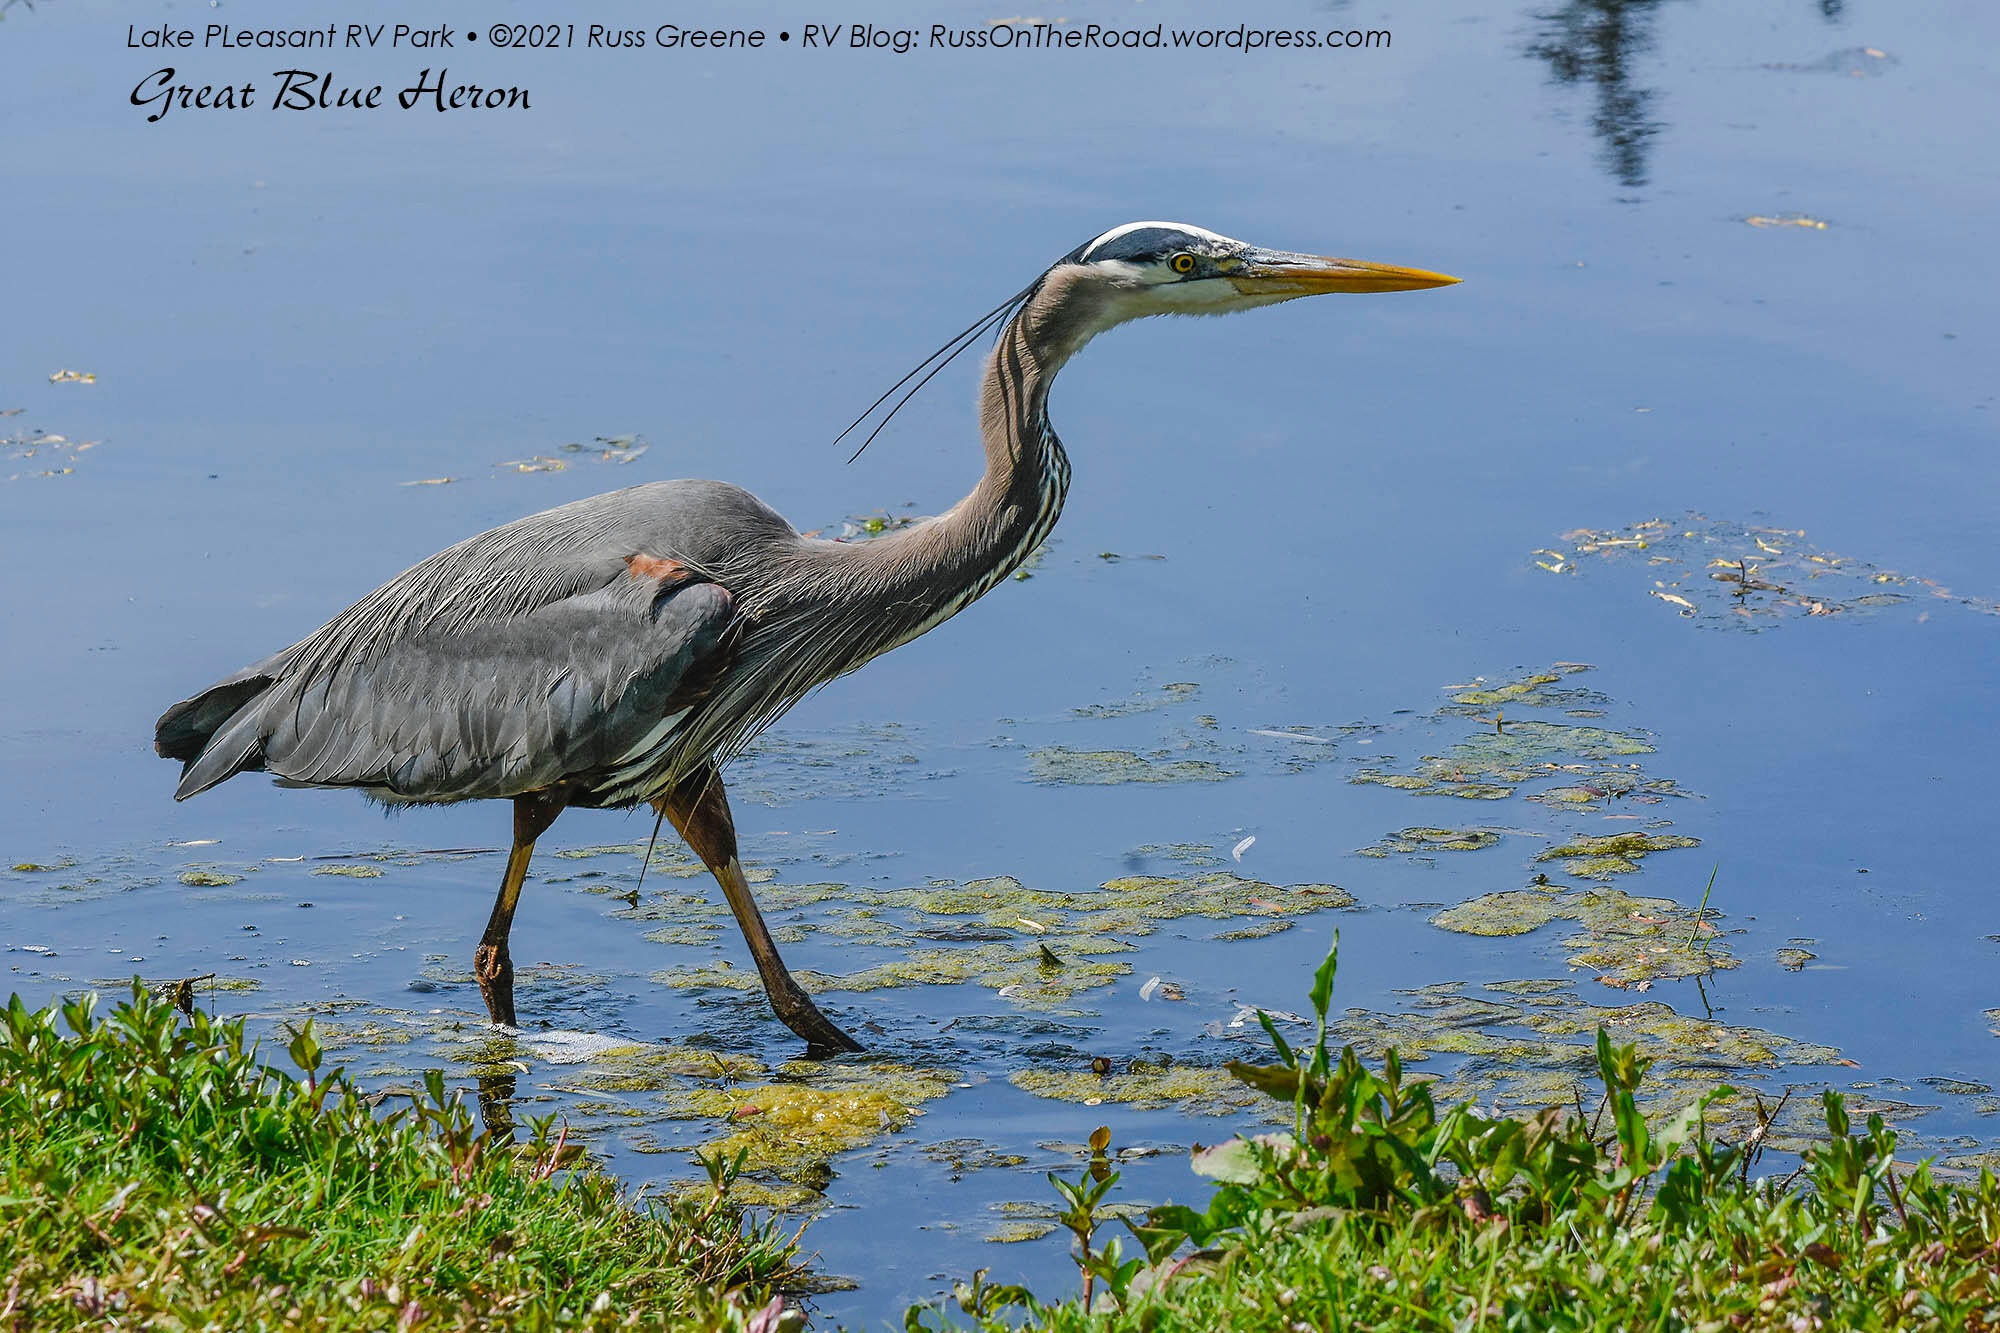 A great blue heron on the hunt.